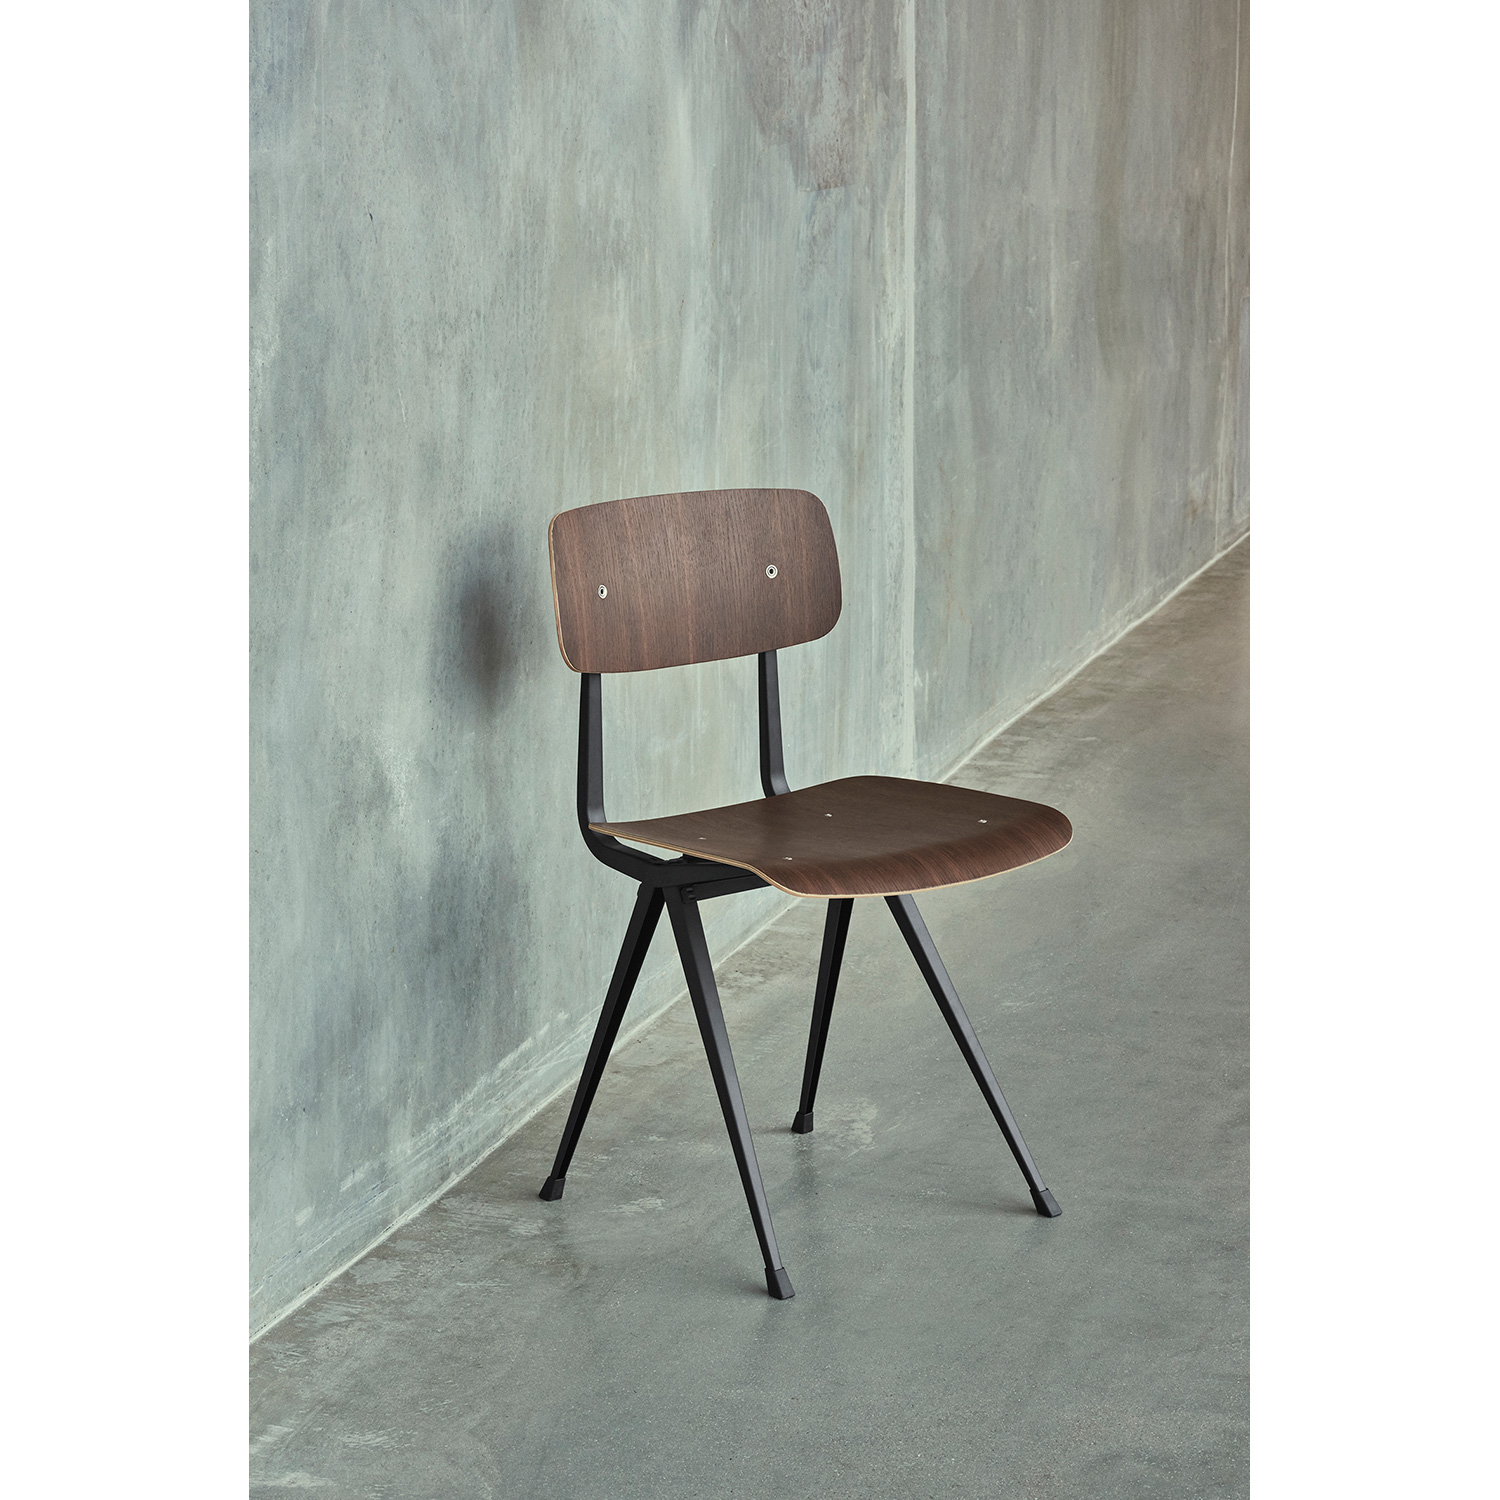 Result chair, black/oak smoked oiled seat